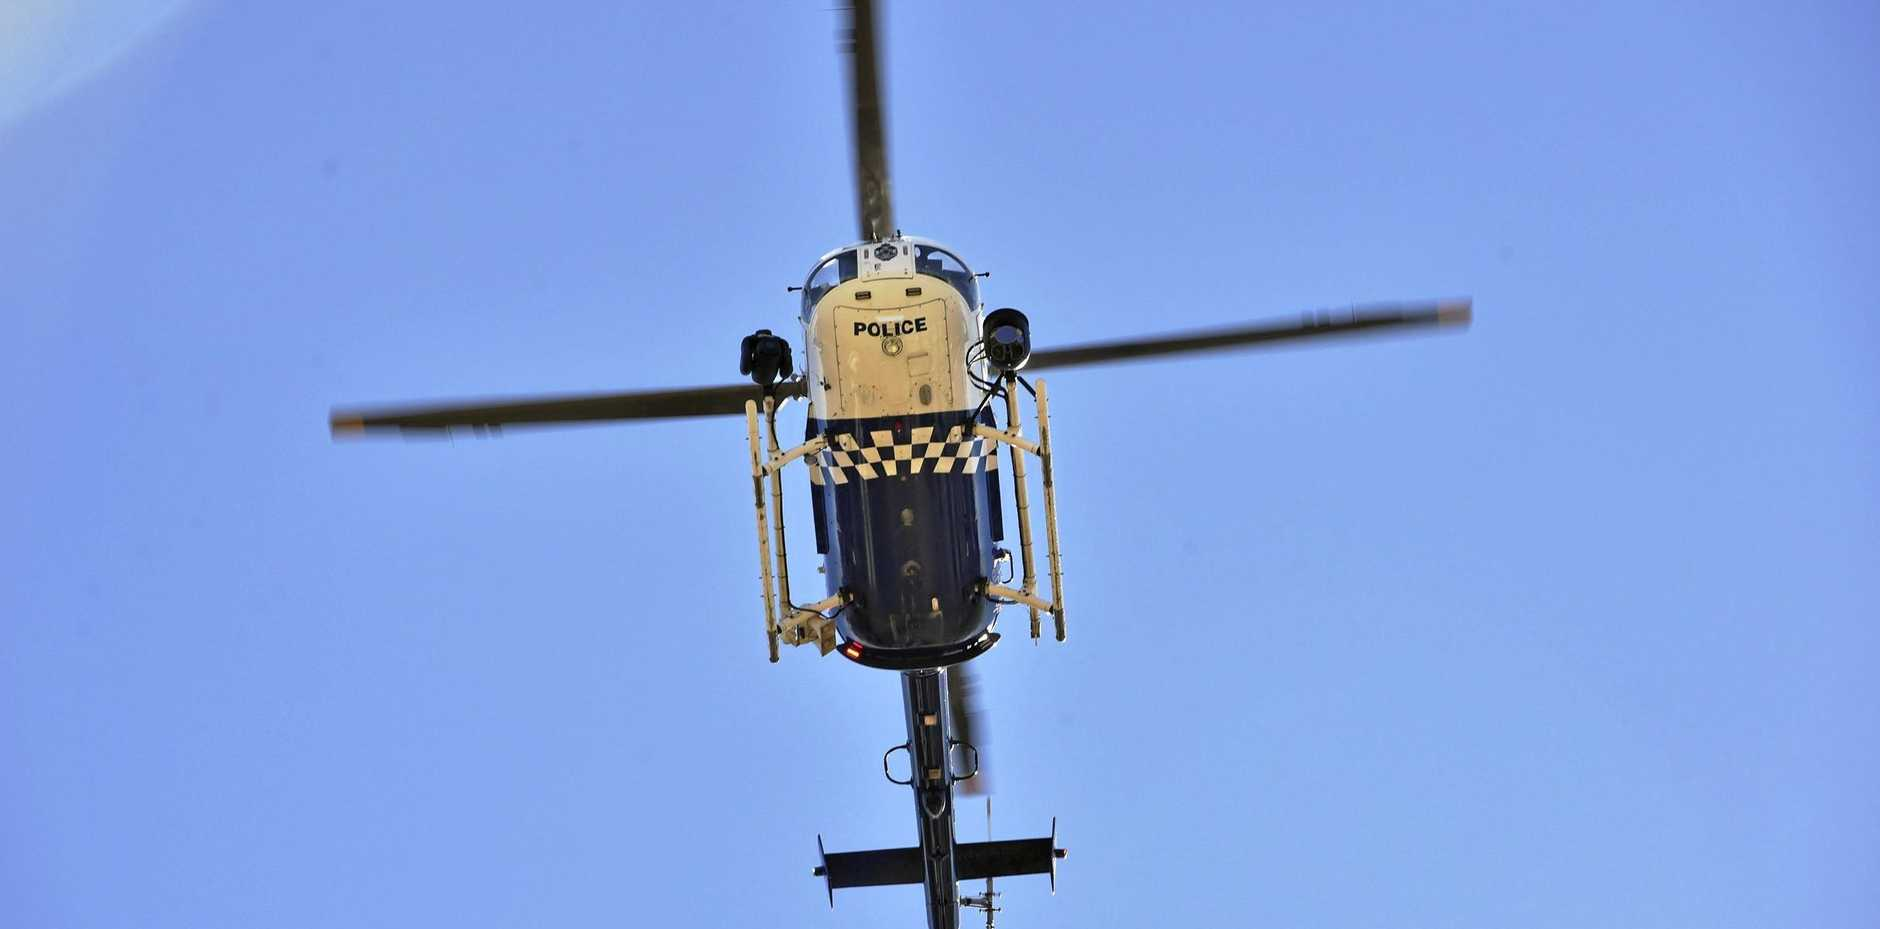 Polair was called in to help search for an 18-year-old man who went missing from Mt Mellum.